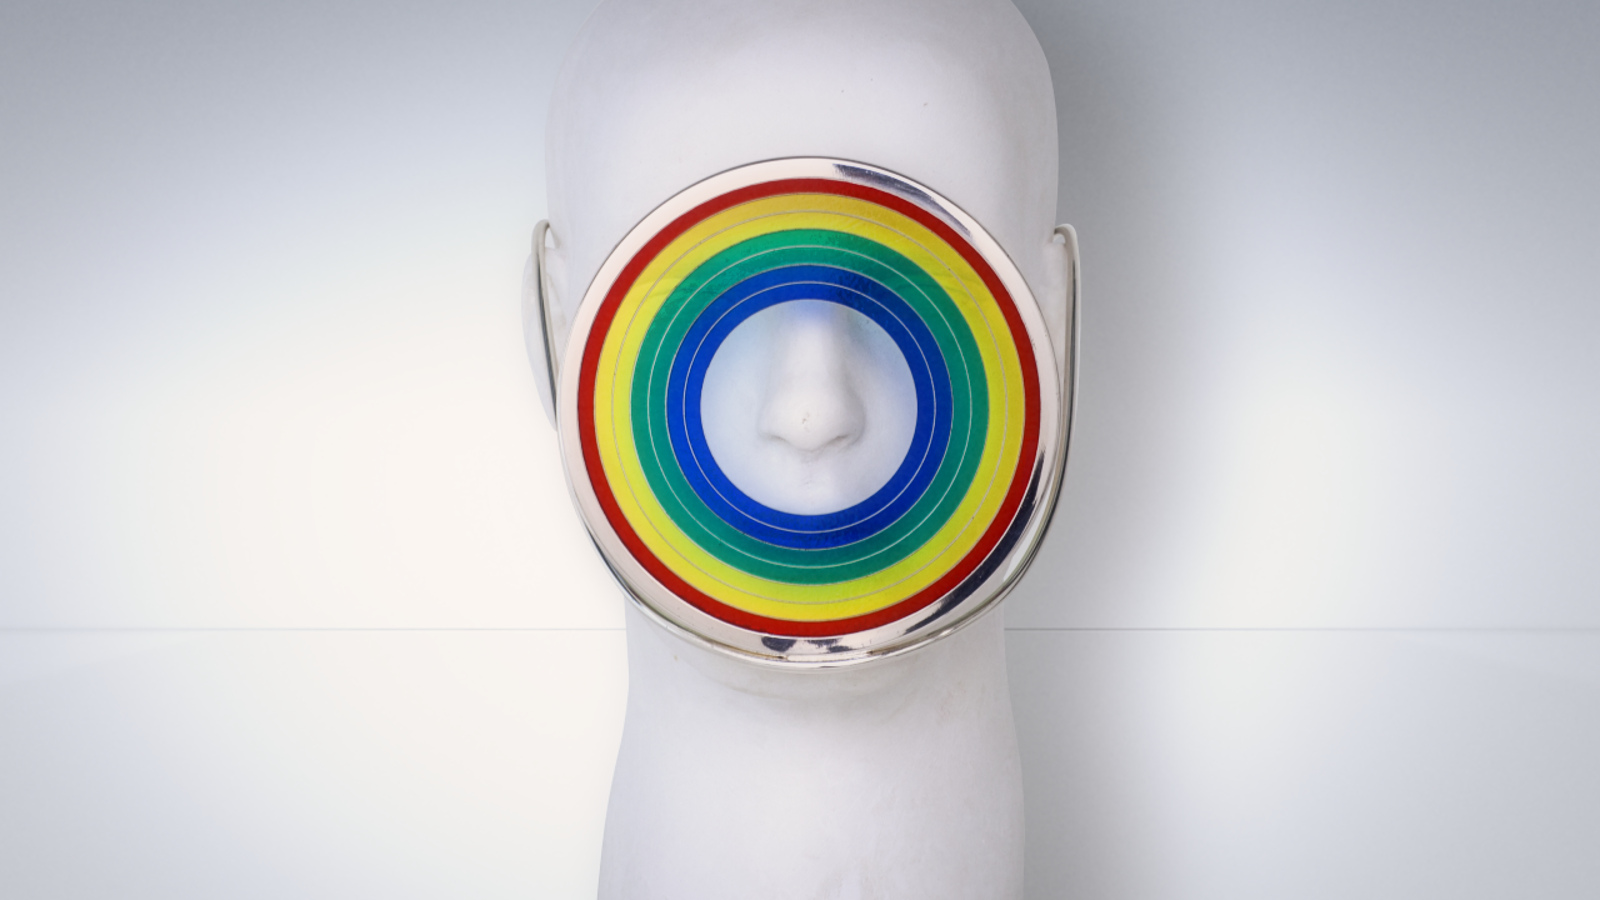 <span class='grey'>23</span> 7 <span class='grey'>3 1</span> - Primordial, Duality, Inner, Primary Center of Focus, Purity, Rainbow Warrior, Ray of Light - Stefano Russo